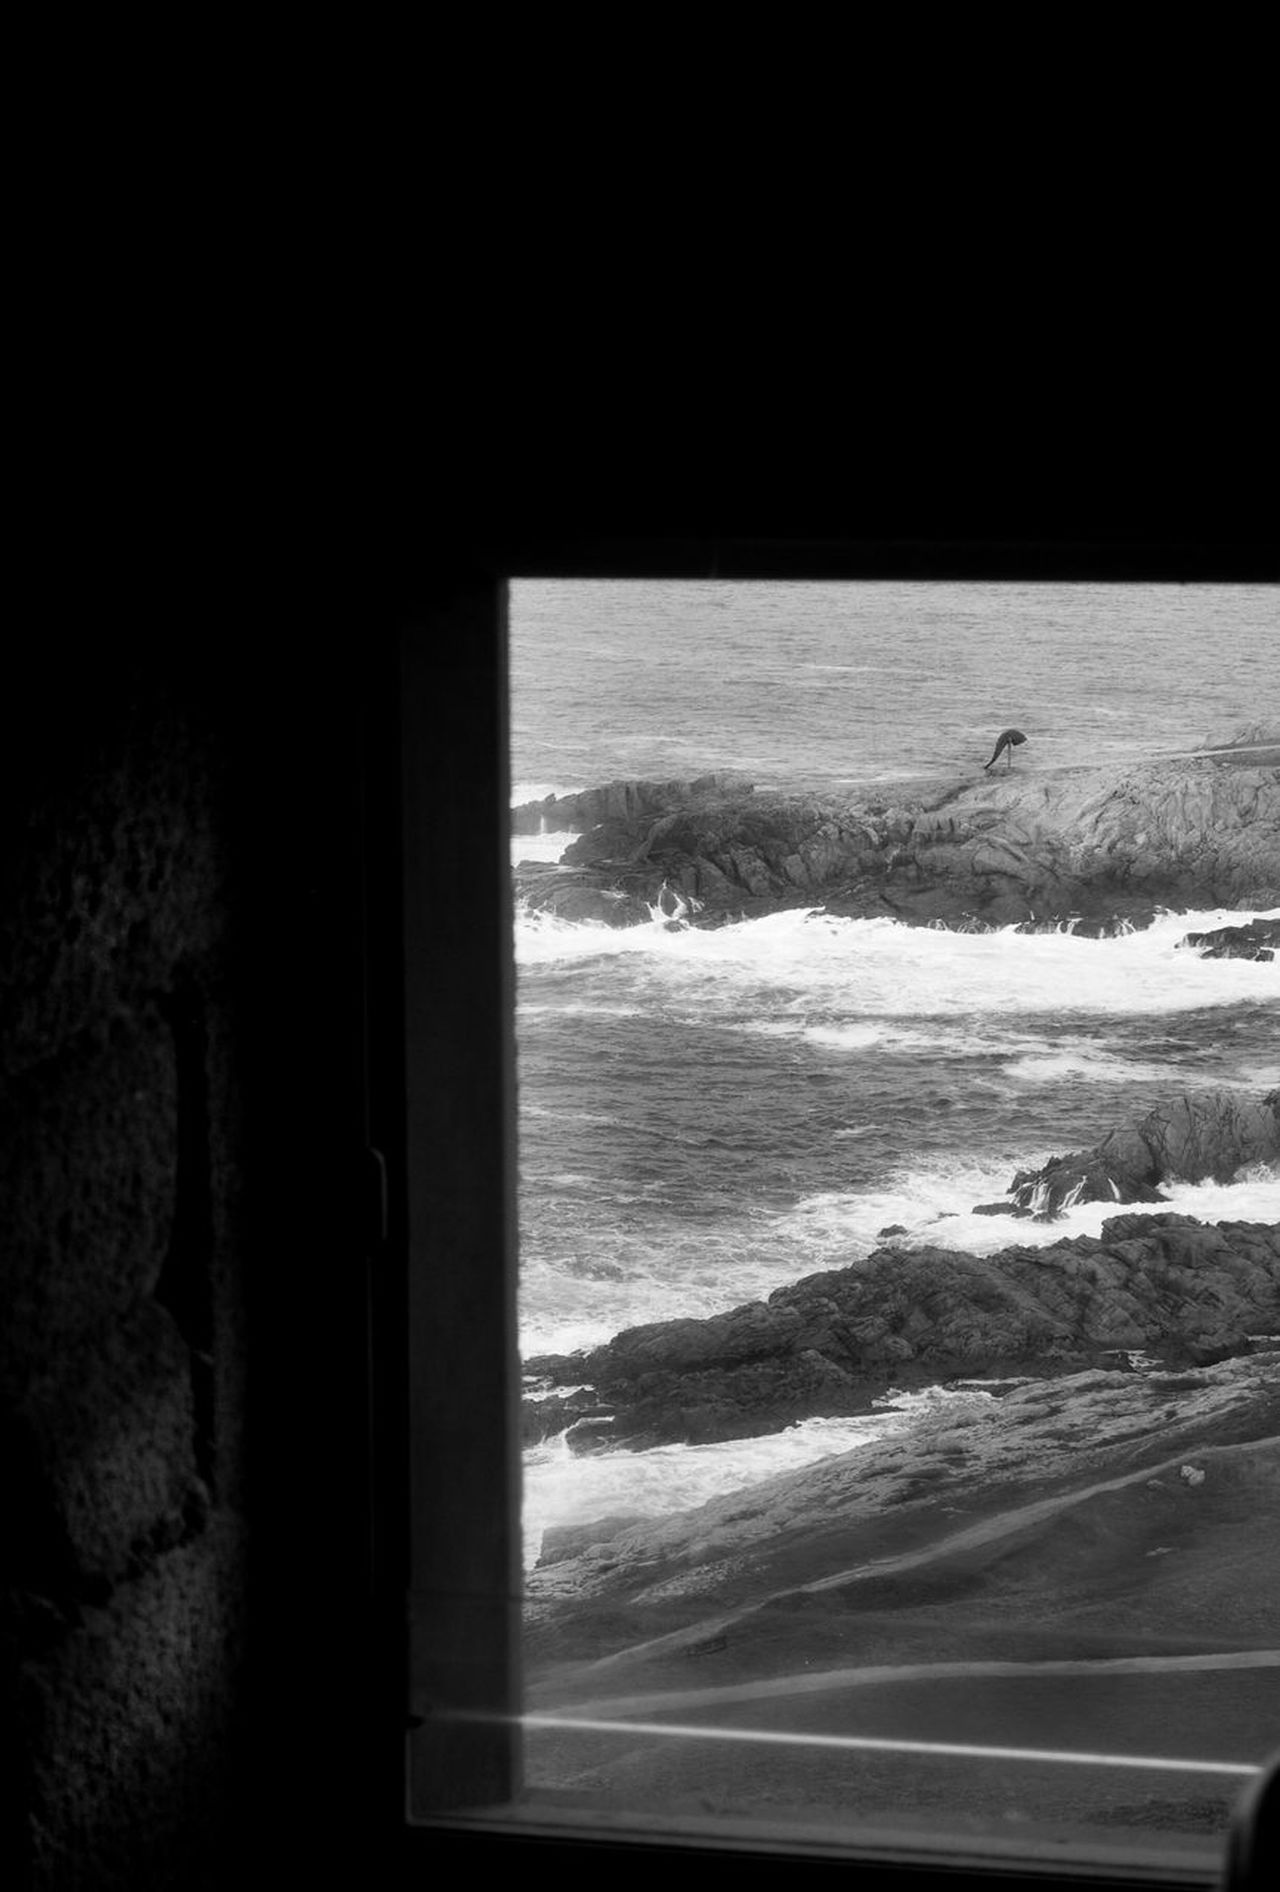 Nature Cold Temperature Sea Beauty In Nature Outdoors Sky Acoruña TorreDeHercules Black And White Photography Architecture B&w Street Photography Fotography Black&white Welcome To Black